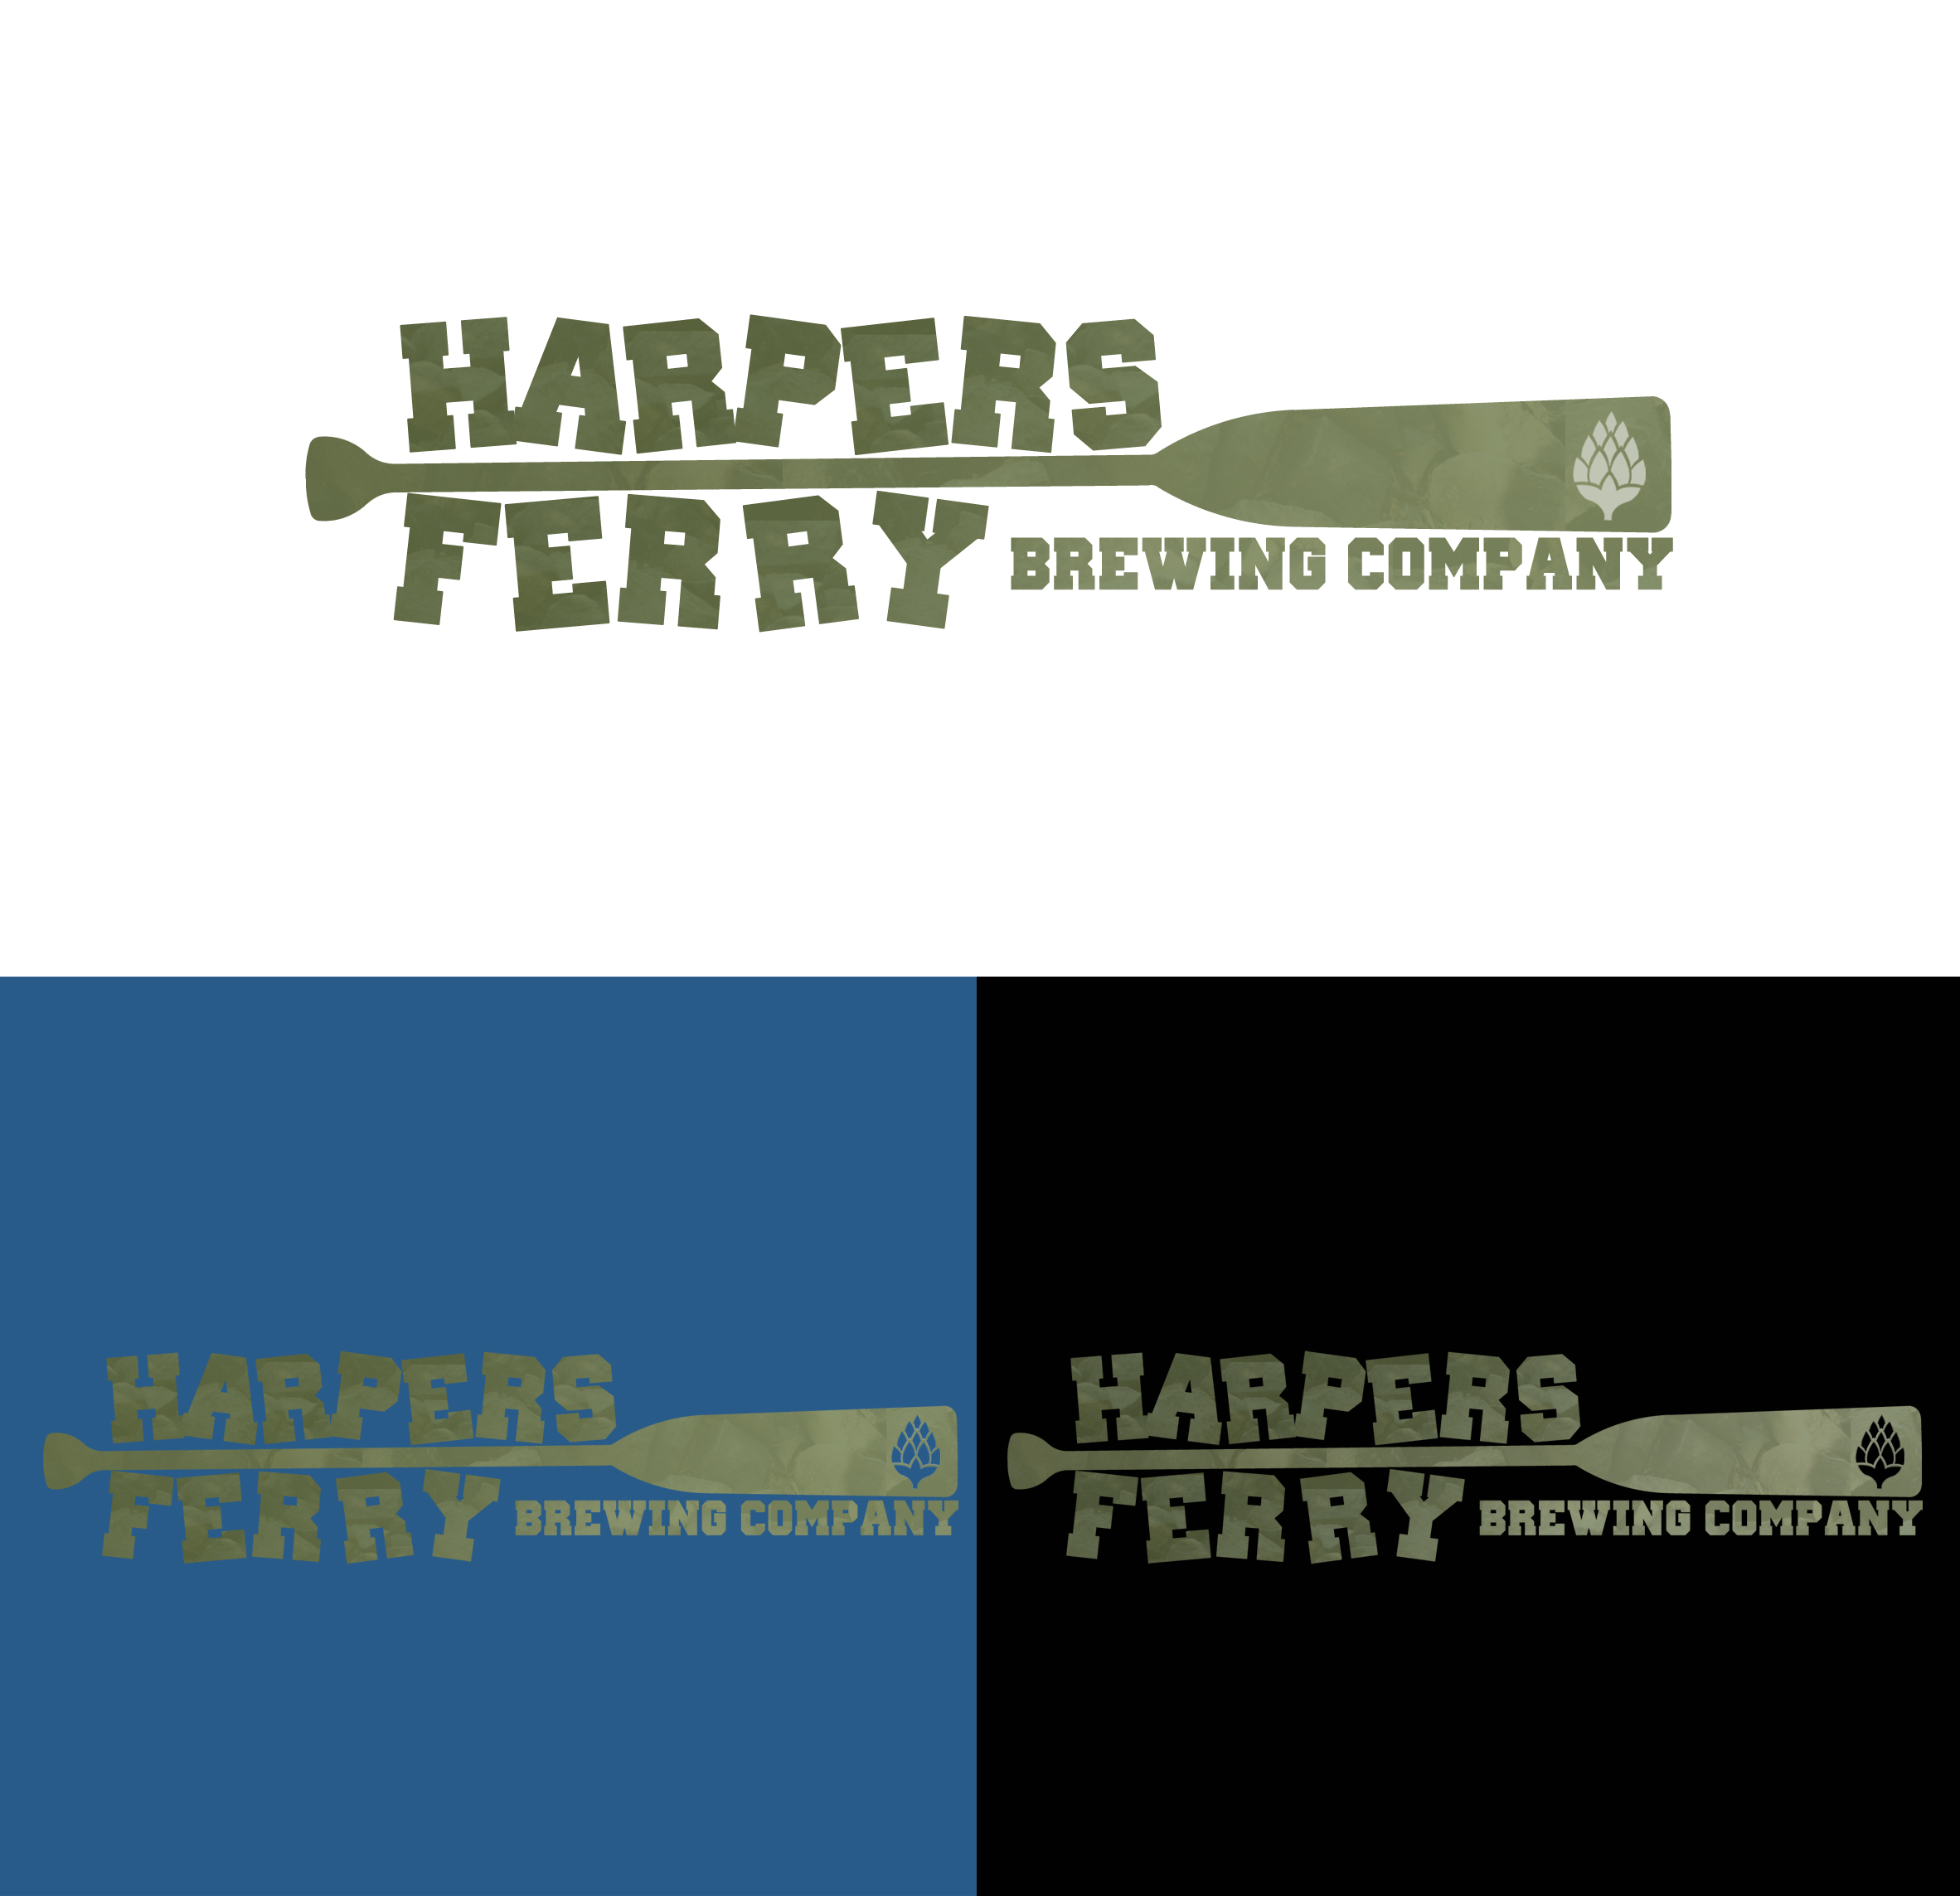 Logo Design by JSDESIGNGROUP - Entry No. 104 in the Logo Design Contest Unique Logo Design Wanted for Harpers ferry brewing company.